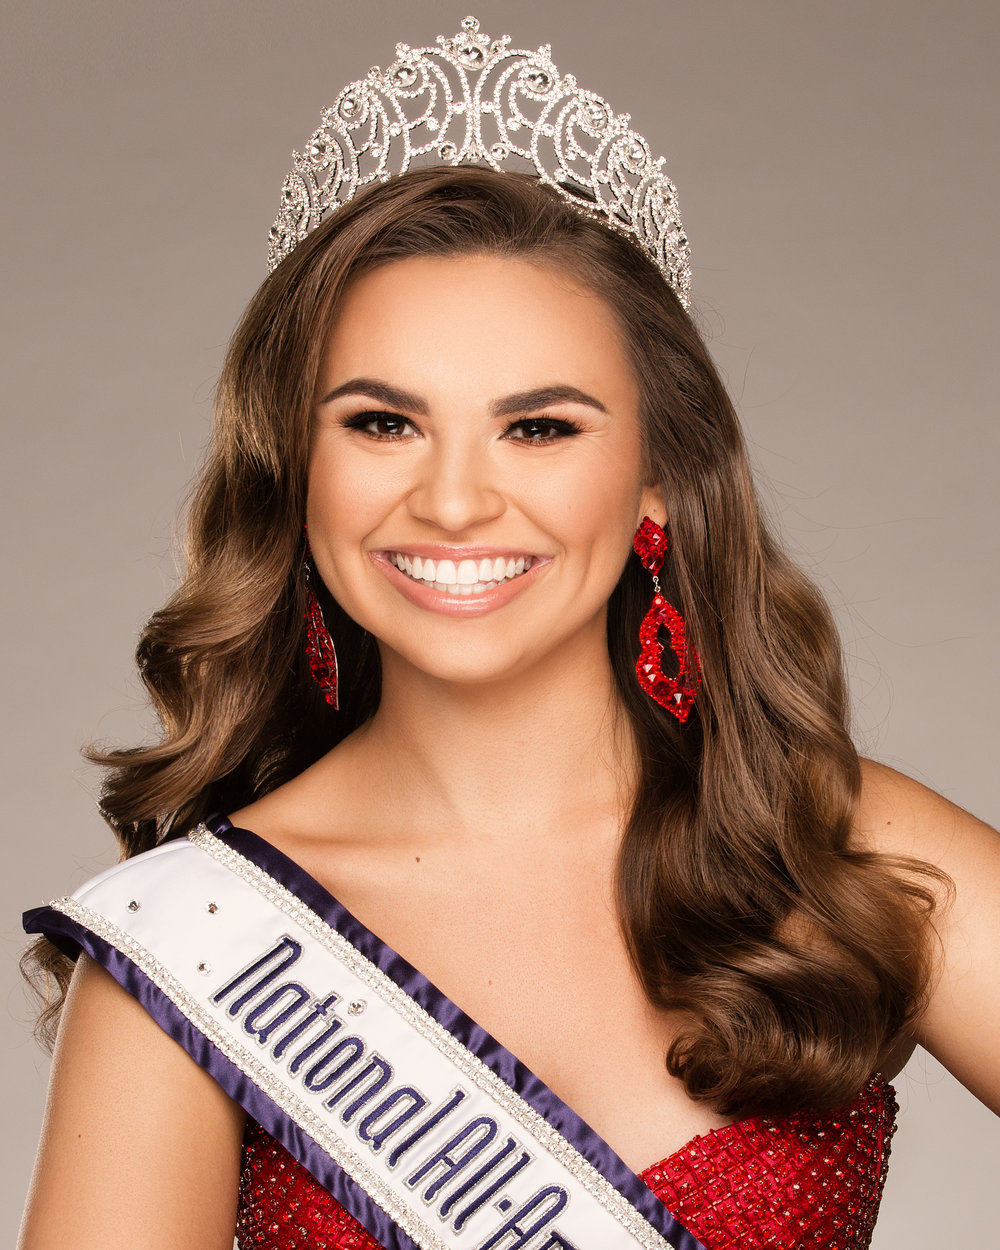 Sarah - 2019 National All-American Miss